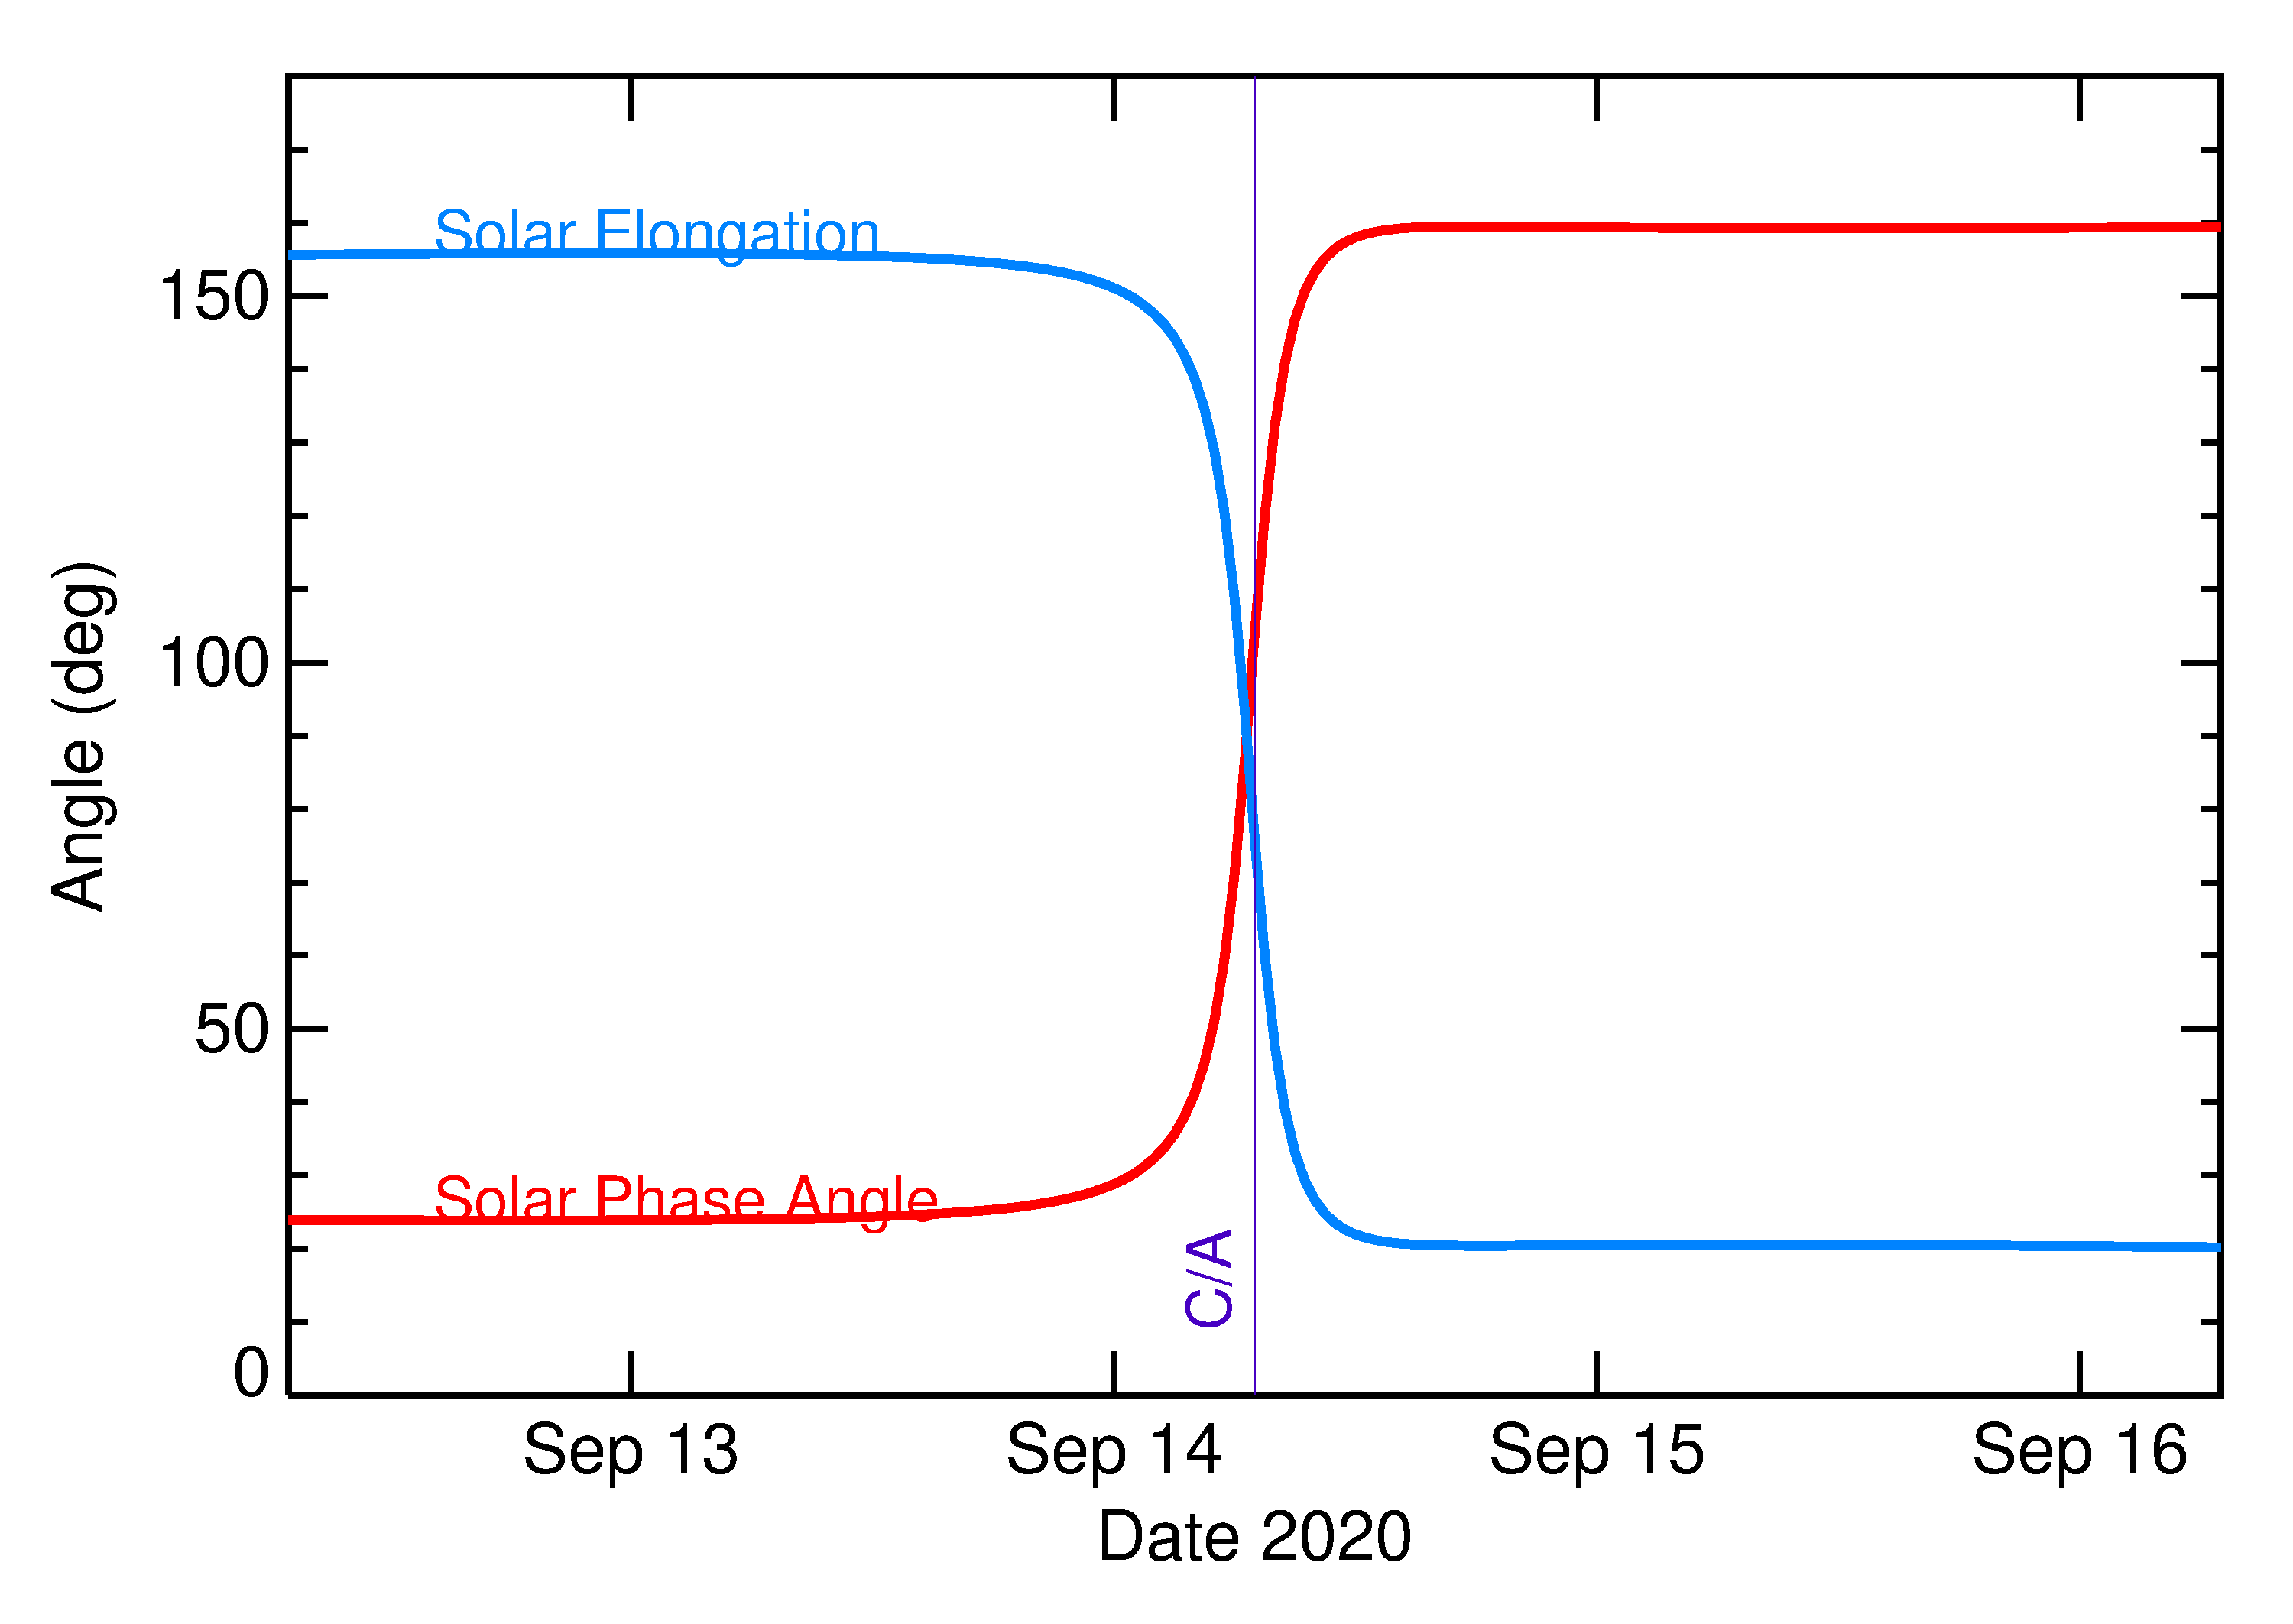 Solar Elongation and Solar Phase Angle of 2020 RF3 in the days around closest approach